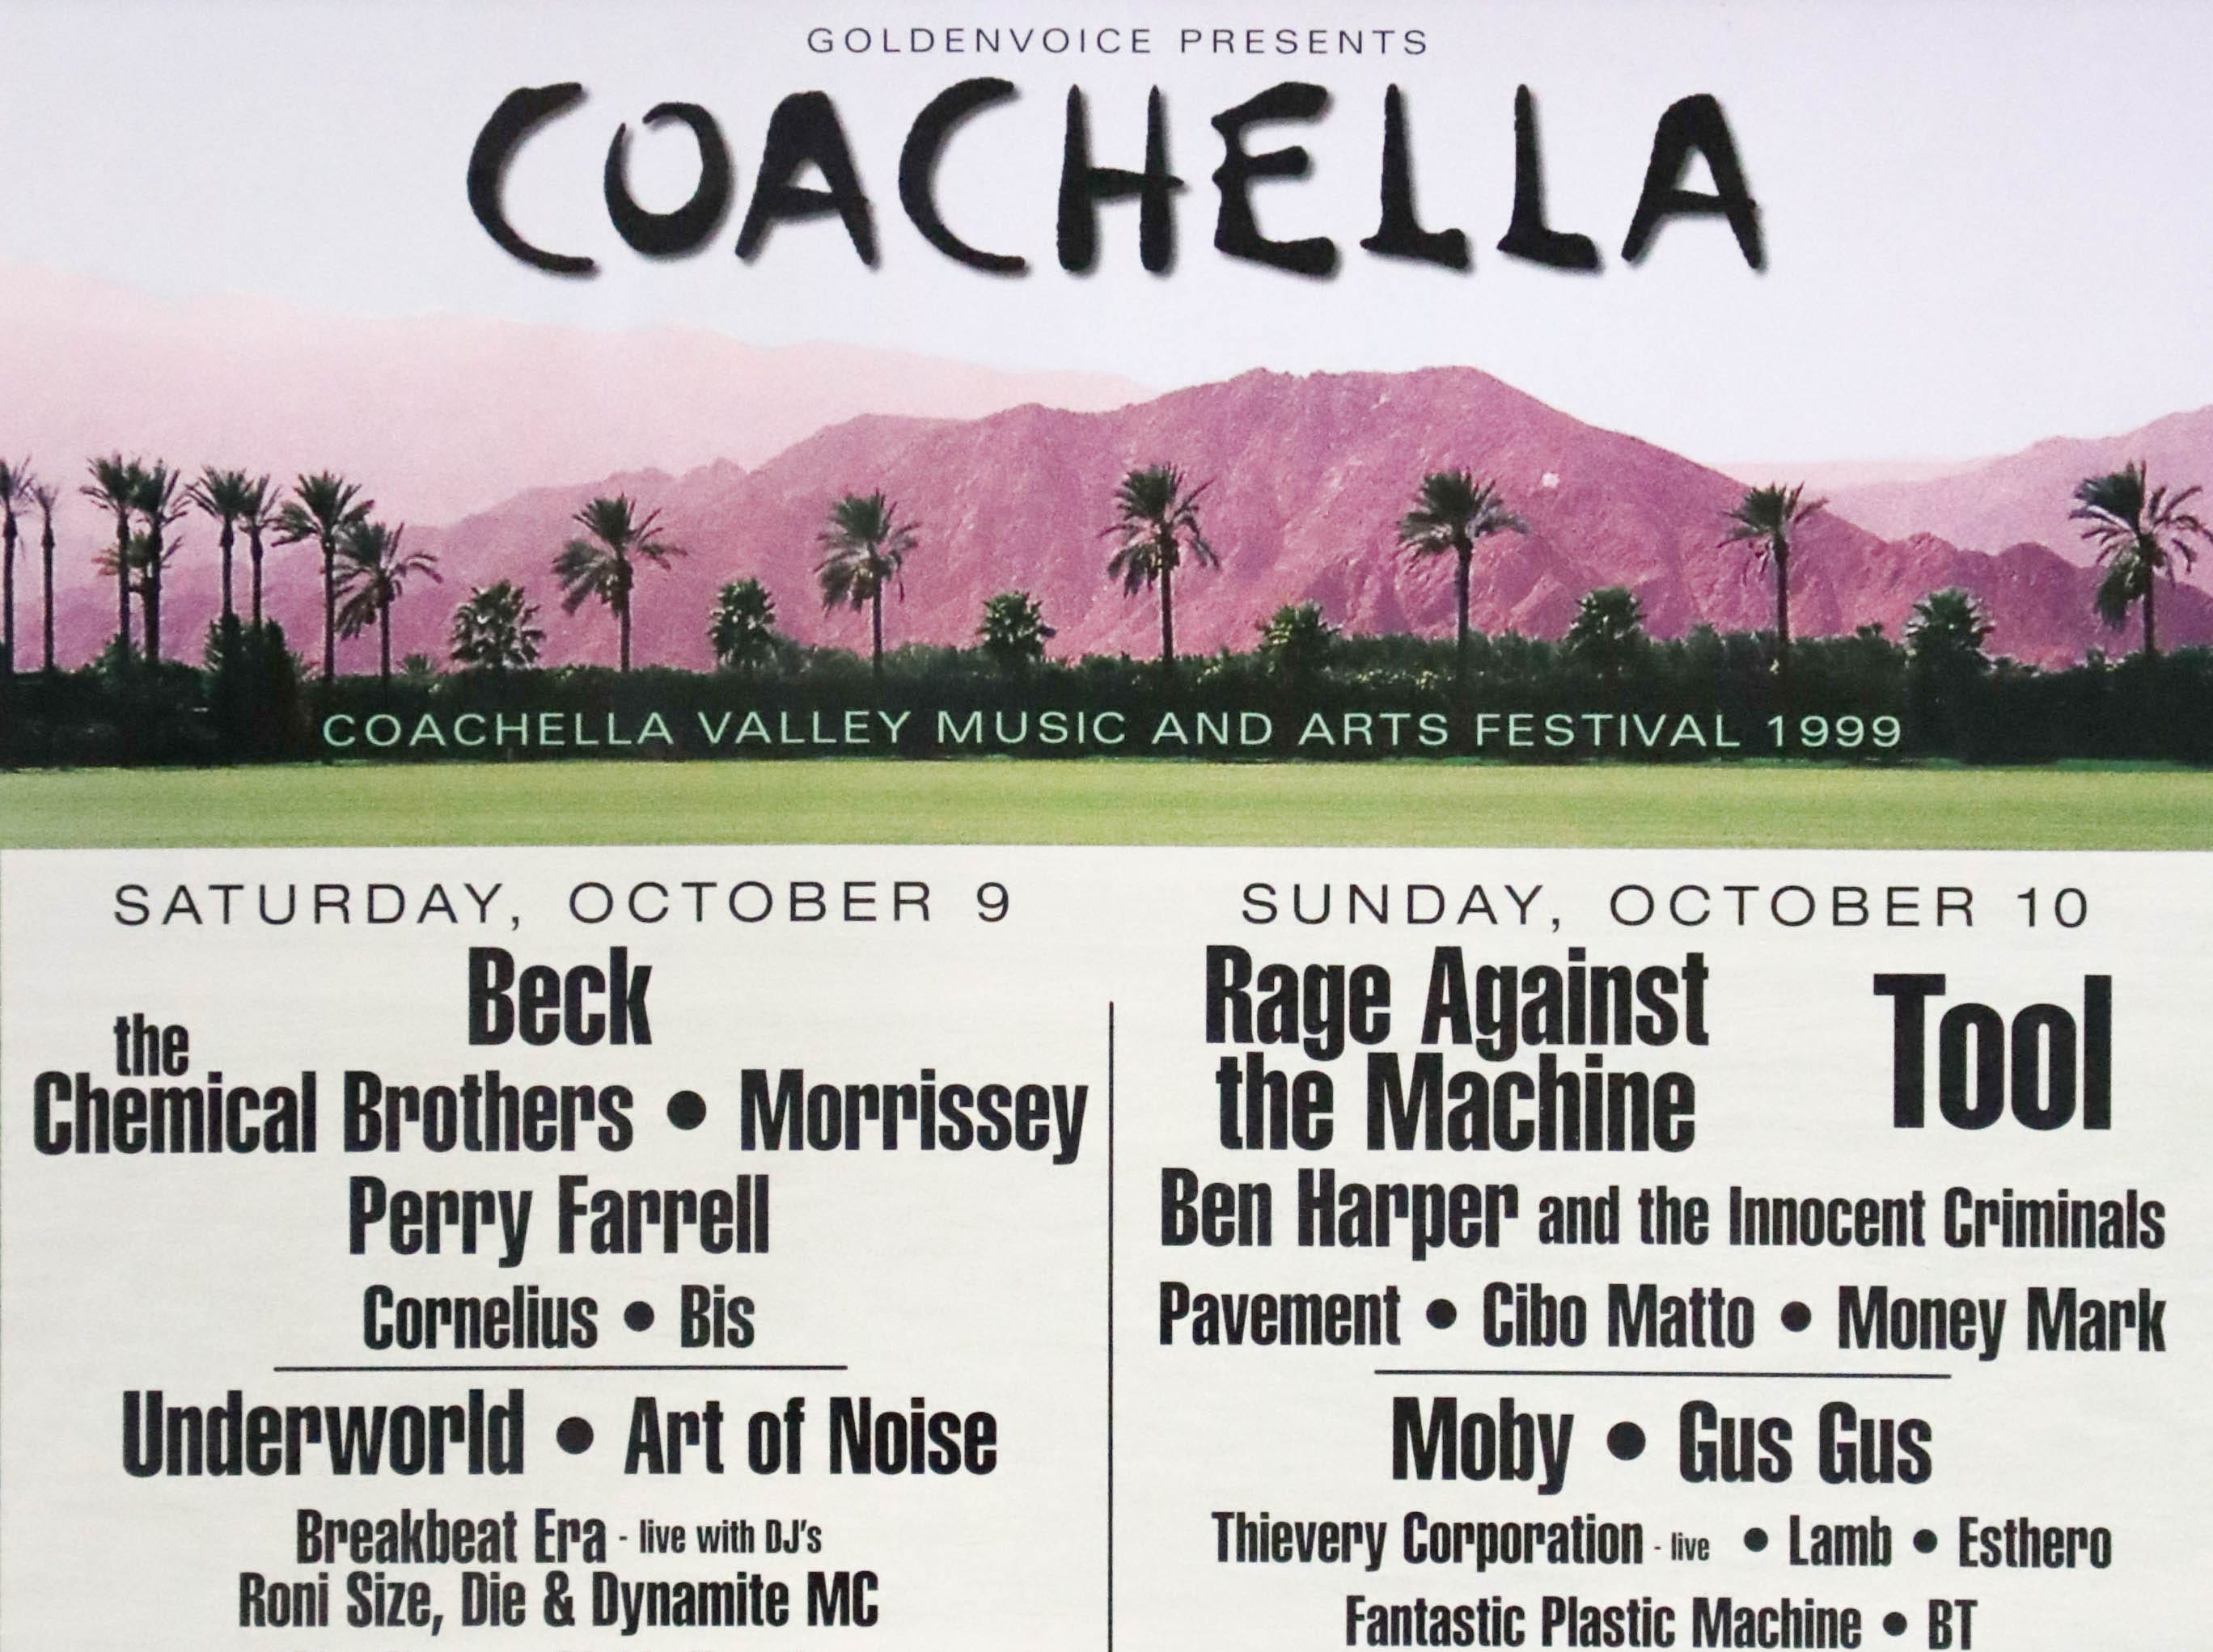 Coachella Valley Music and Arts Festival poster 1999